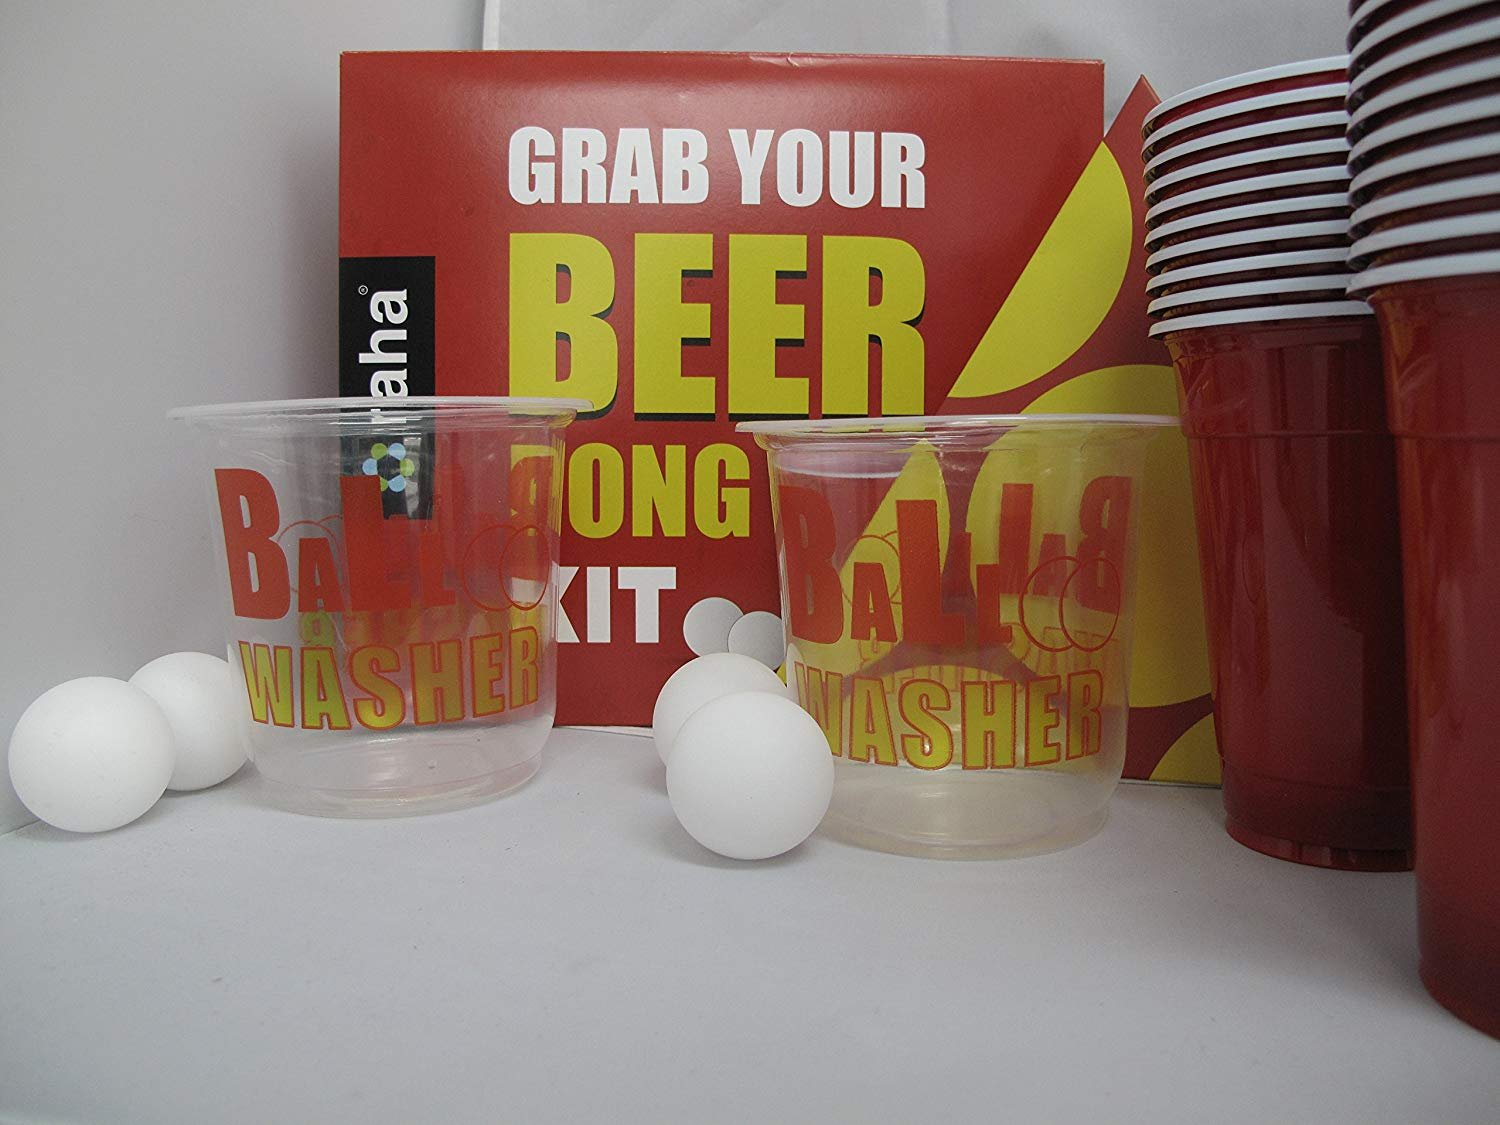 We Can Source It Ltd 28 Piece Beer Pong Ultimate Tournament Kit Cups & Balls Adults Drinking Game Set We Can Source ItTM